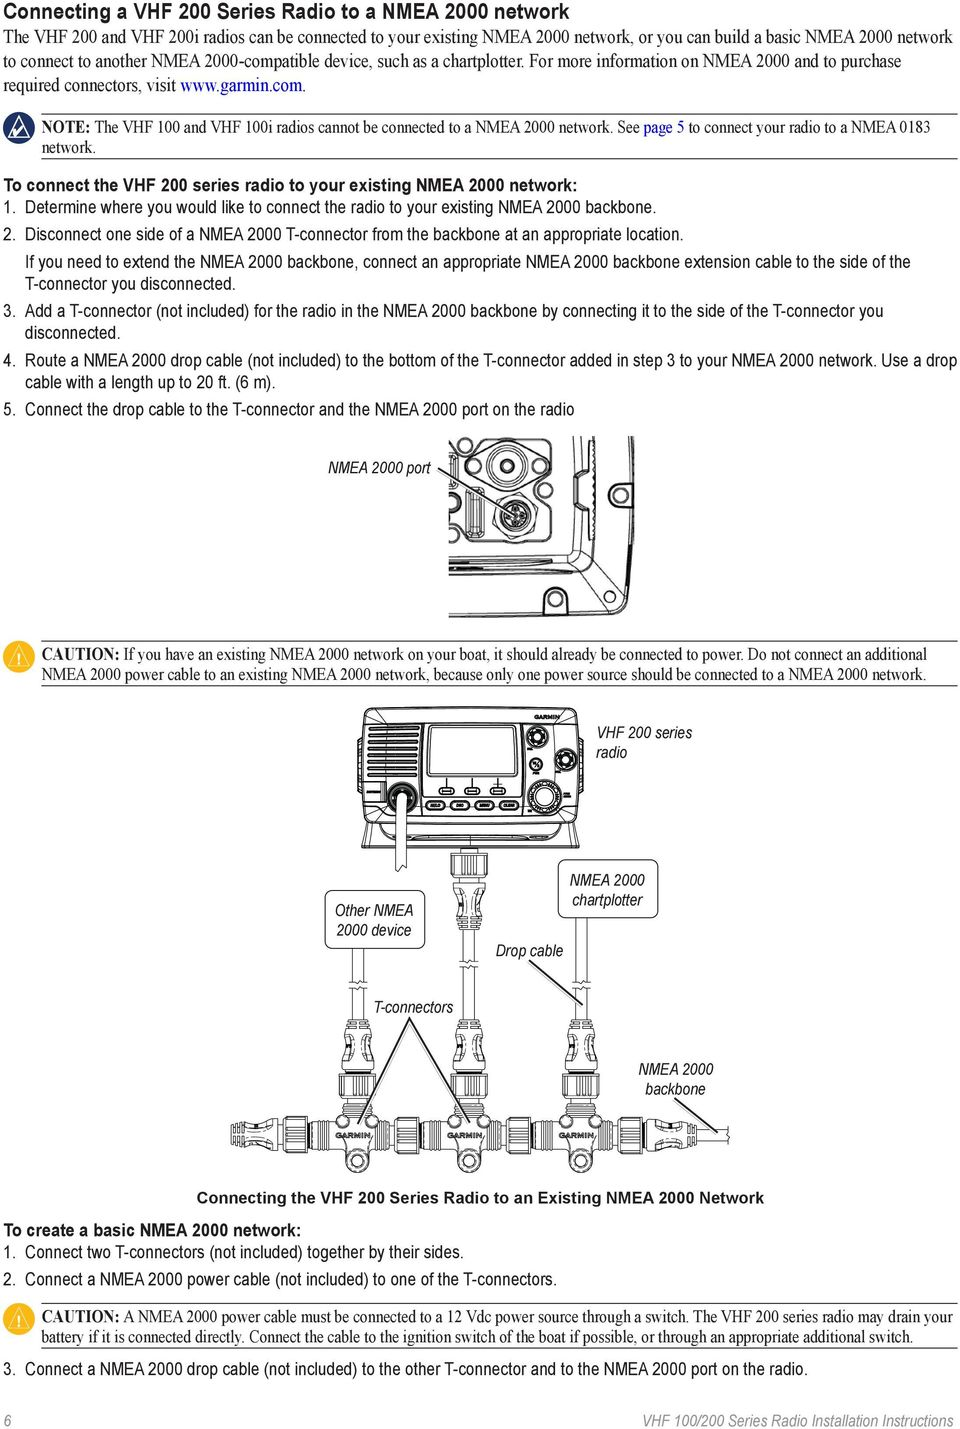 Vhf 100 200 Series Radio Installation Instructions Pdf Raymarine Nmea 0183 Cable Wiring Diagram See Page 5 To Connect Your A Network The